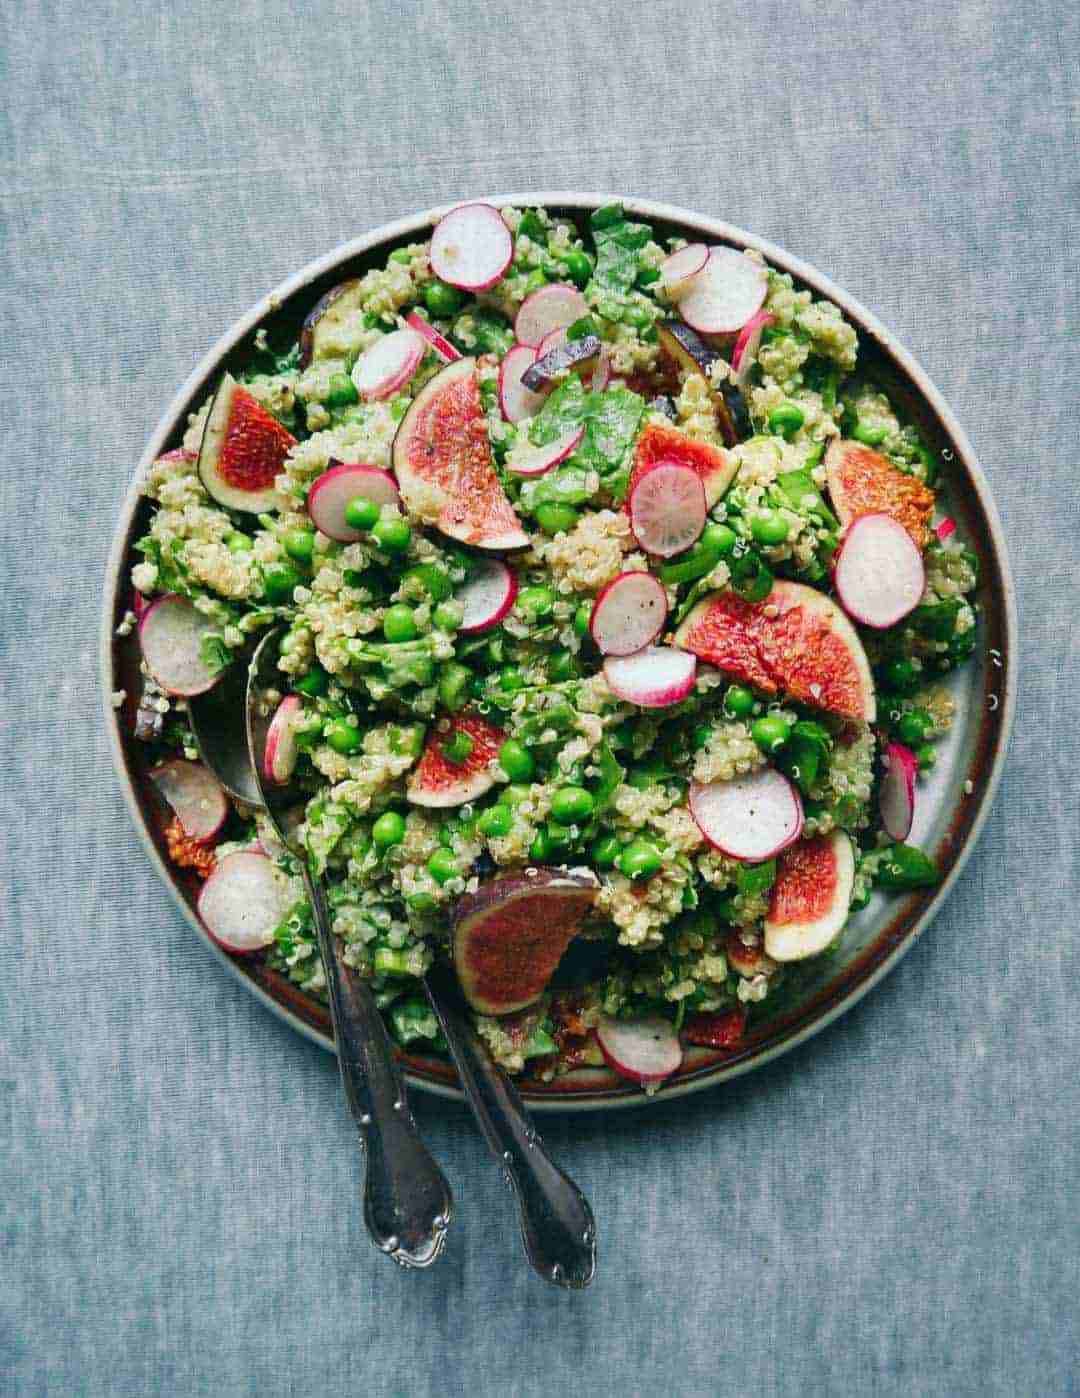 Fig salad with quinoa and avocado cream